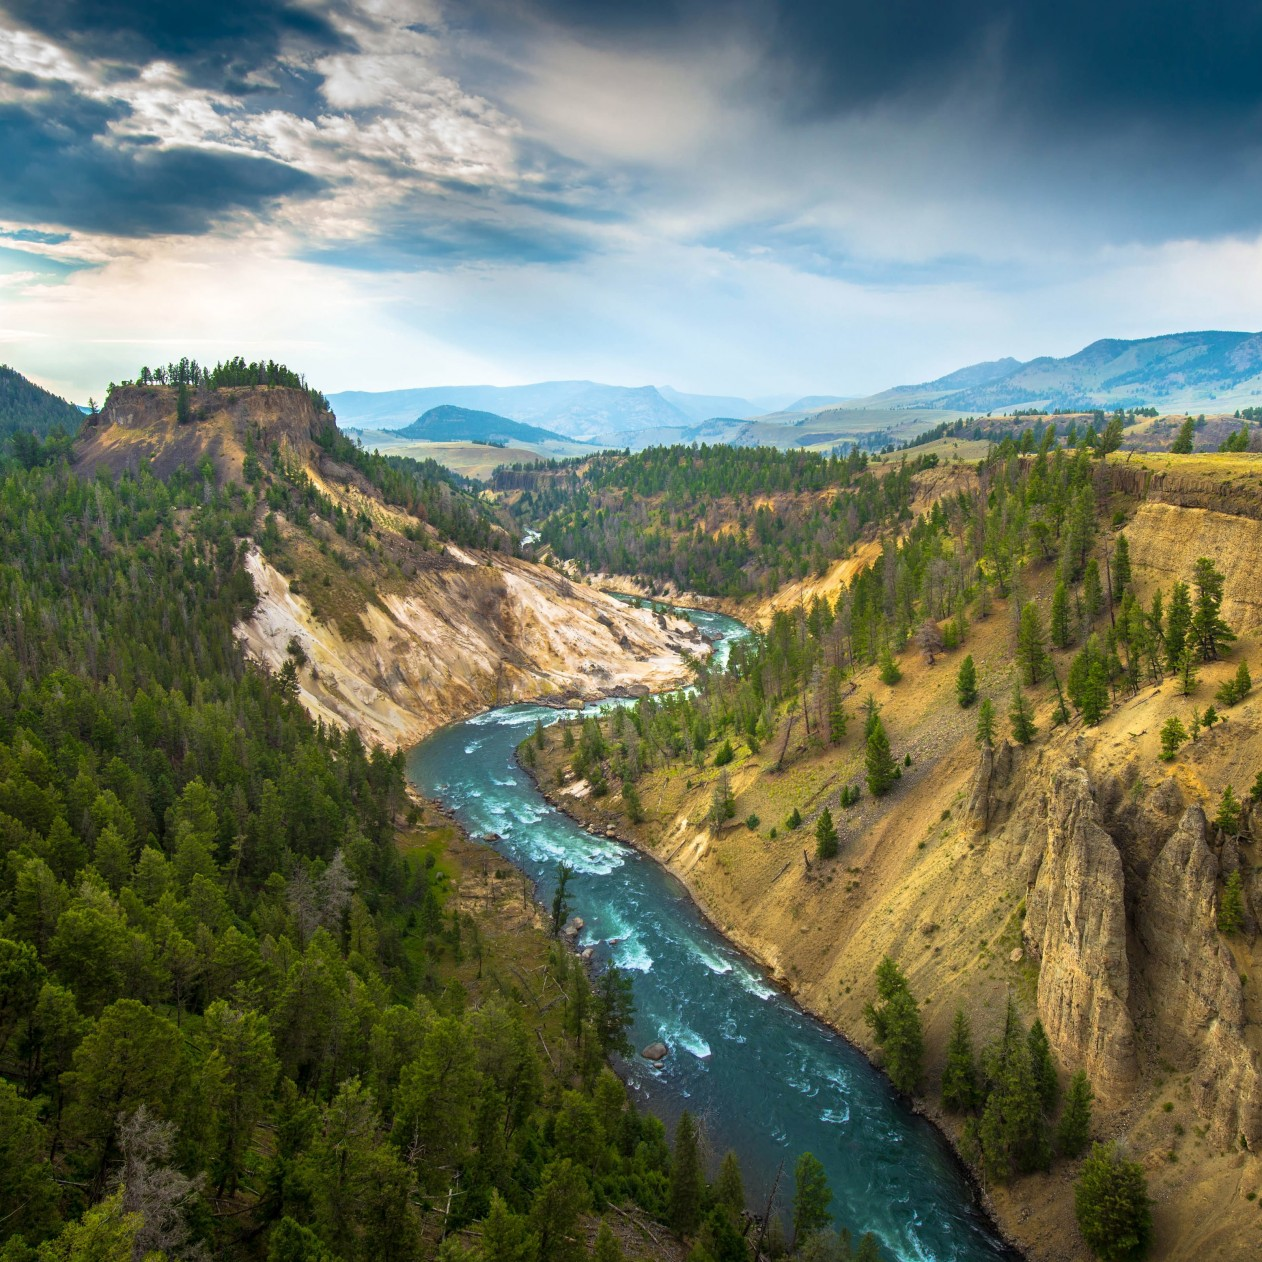 The River, Grand Canyon of Yellowstone National Park, USA Wallpaper for Apple iPad mini